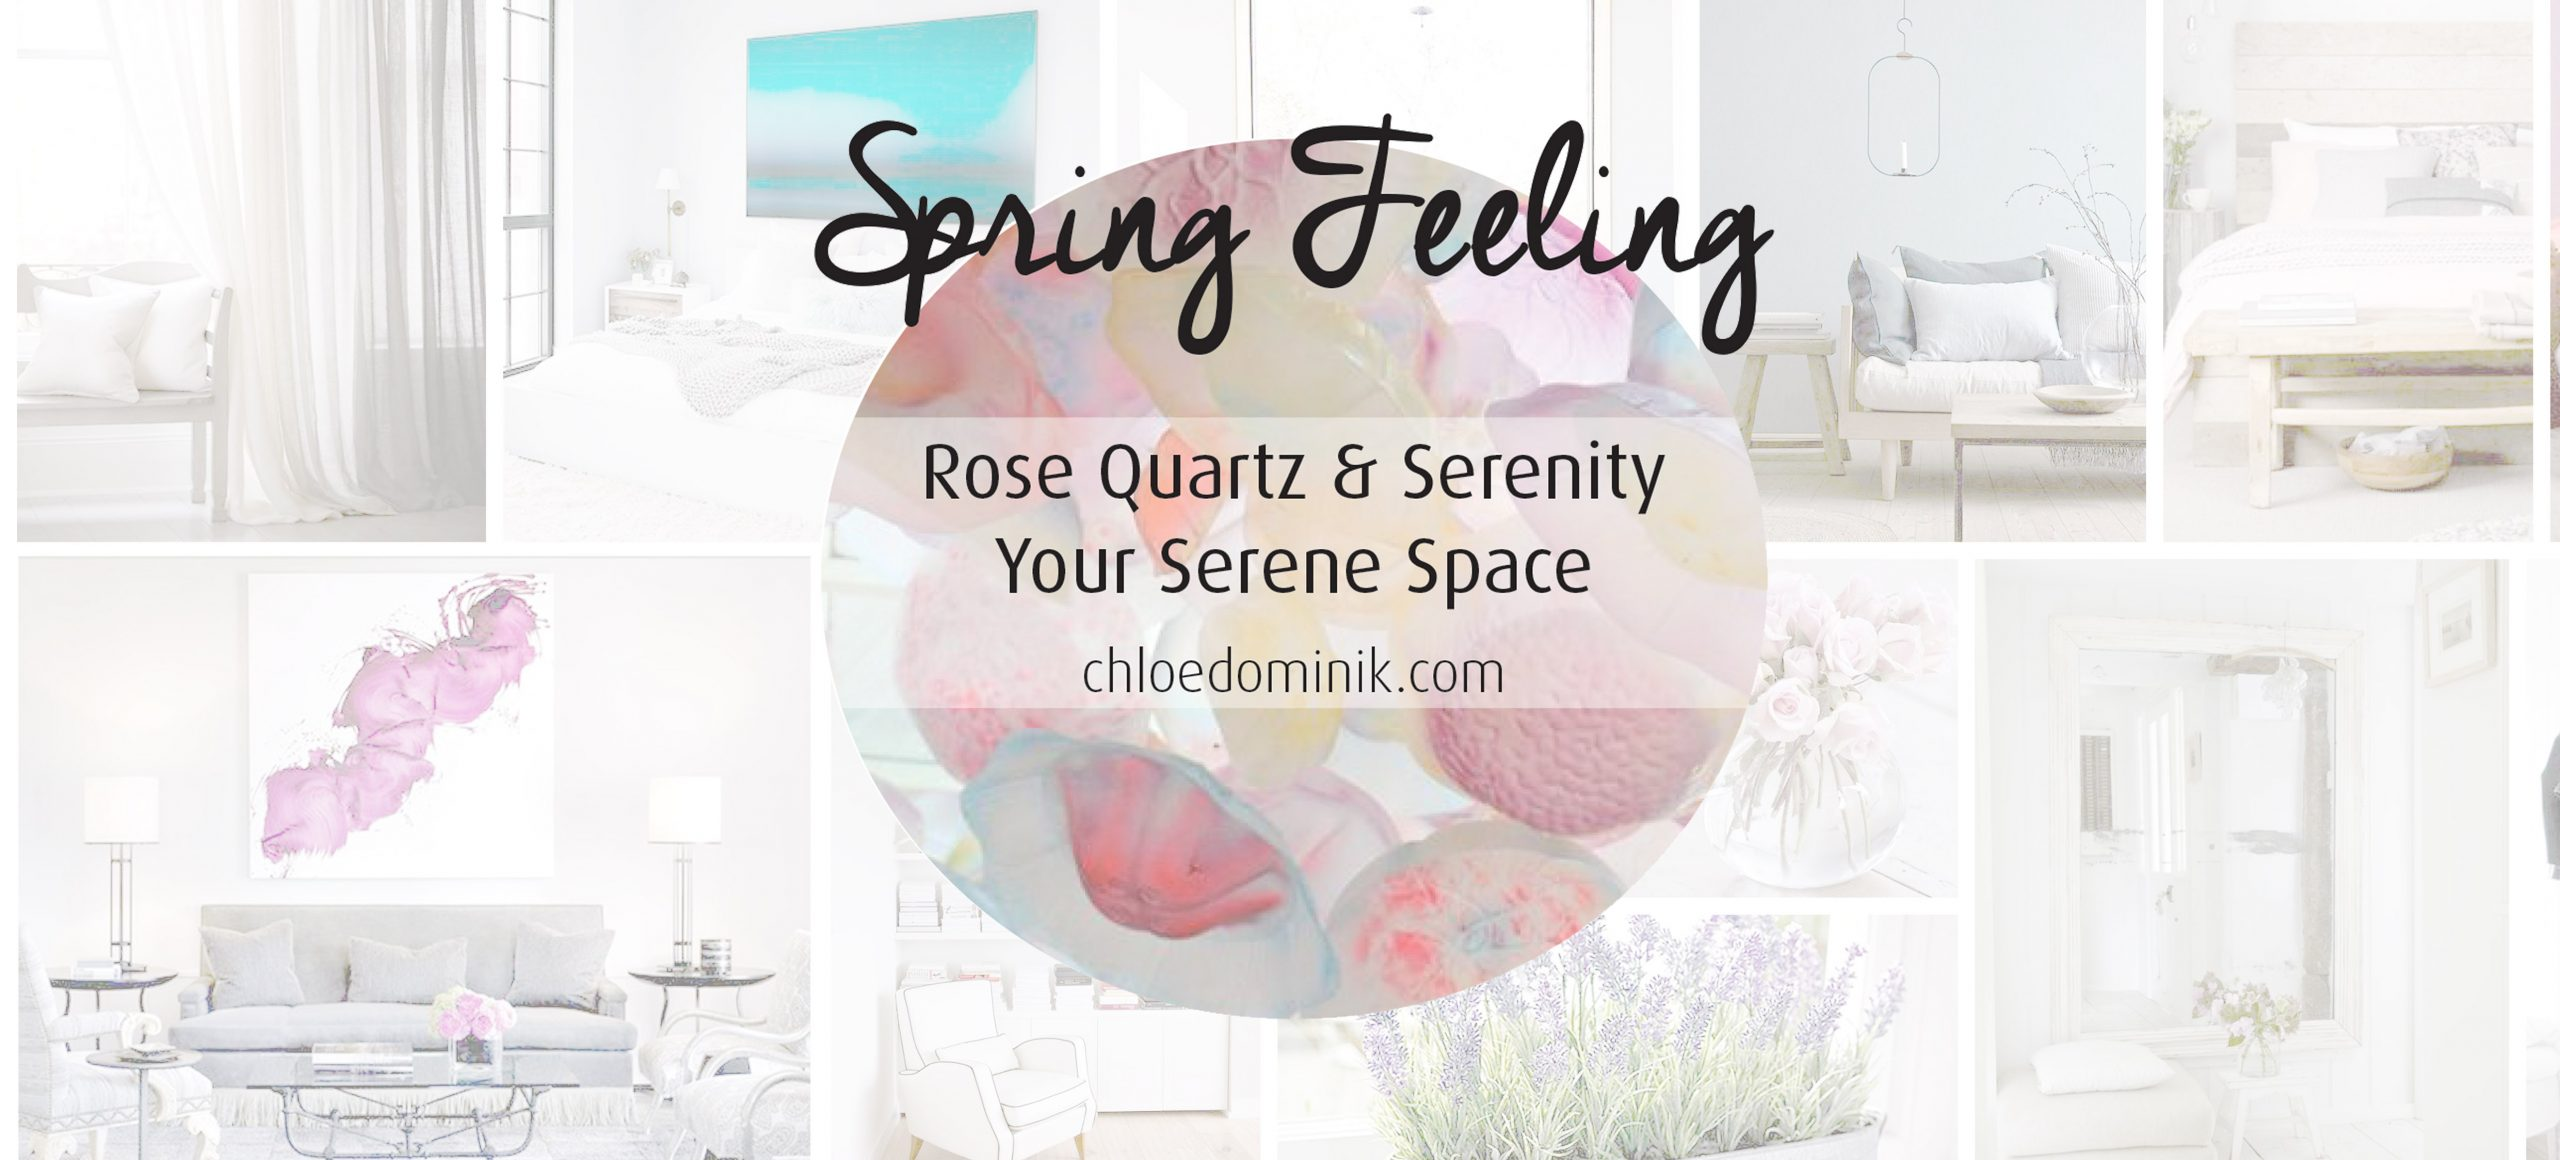 Spring Feeling: Rose Quartz & Serenity Your Serene Space